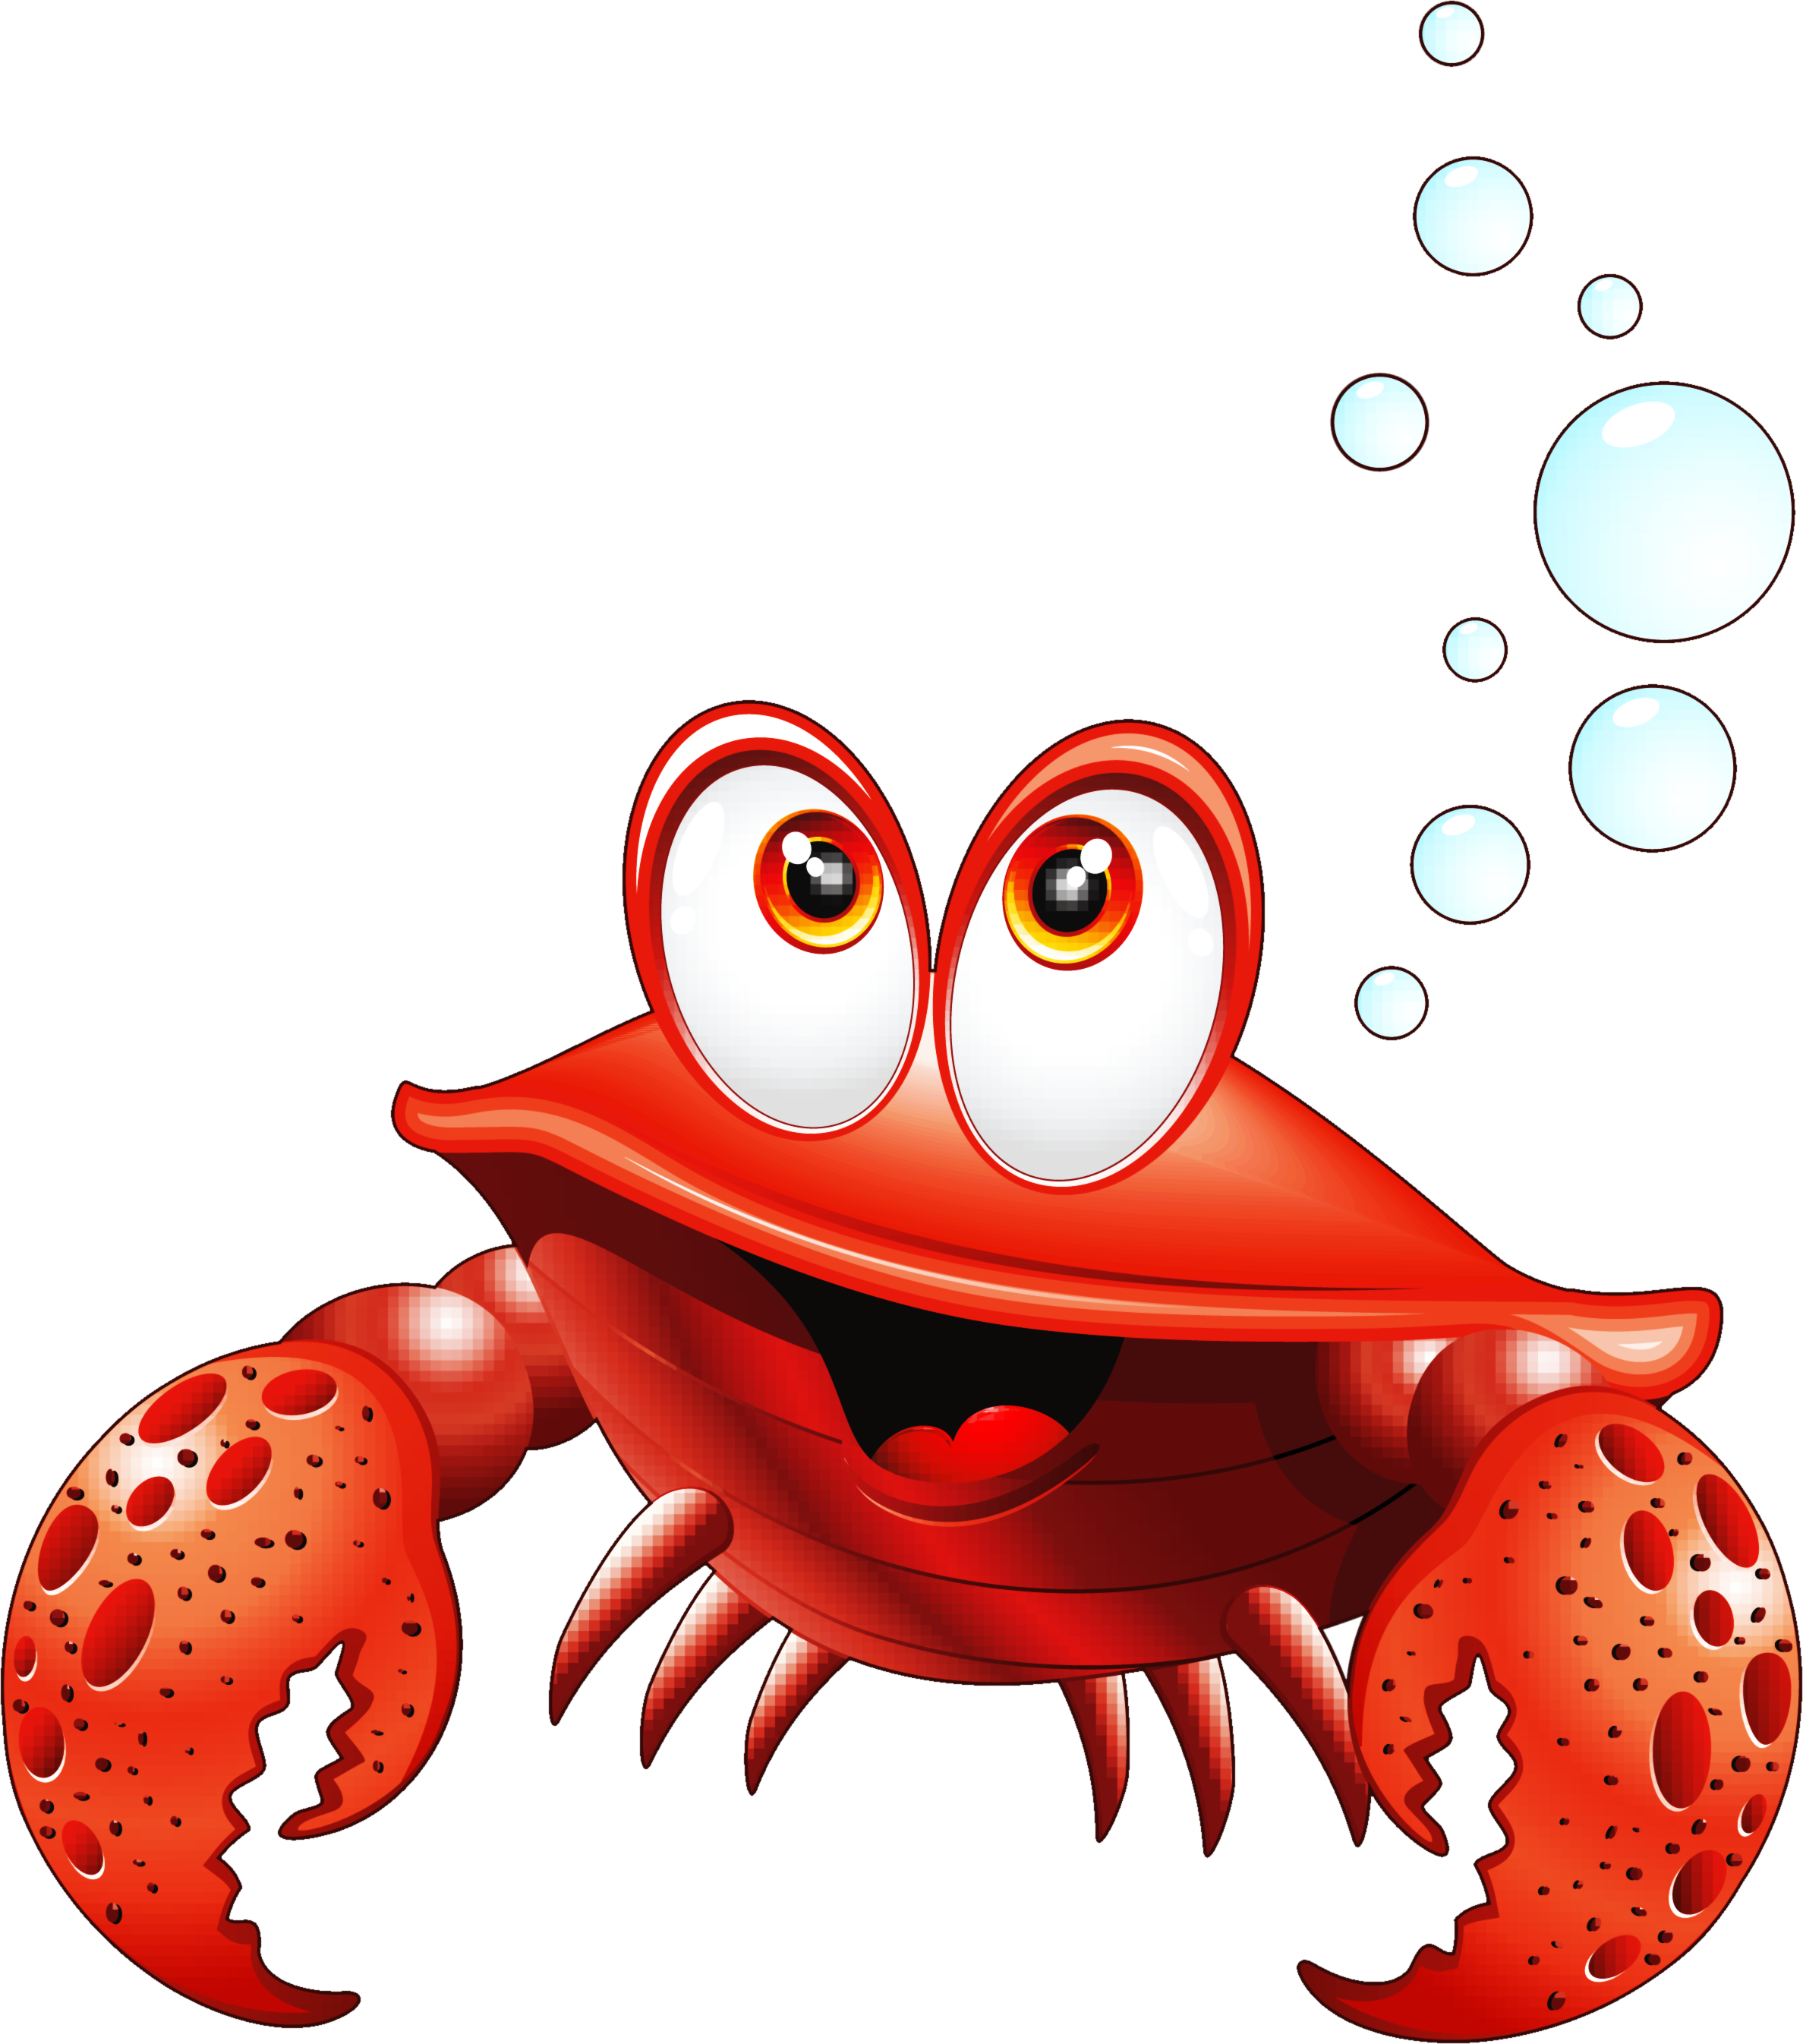 royalty free stock under the sea clipart free #63804545